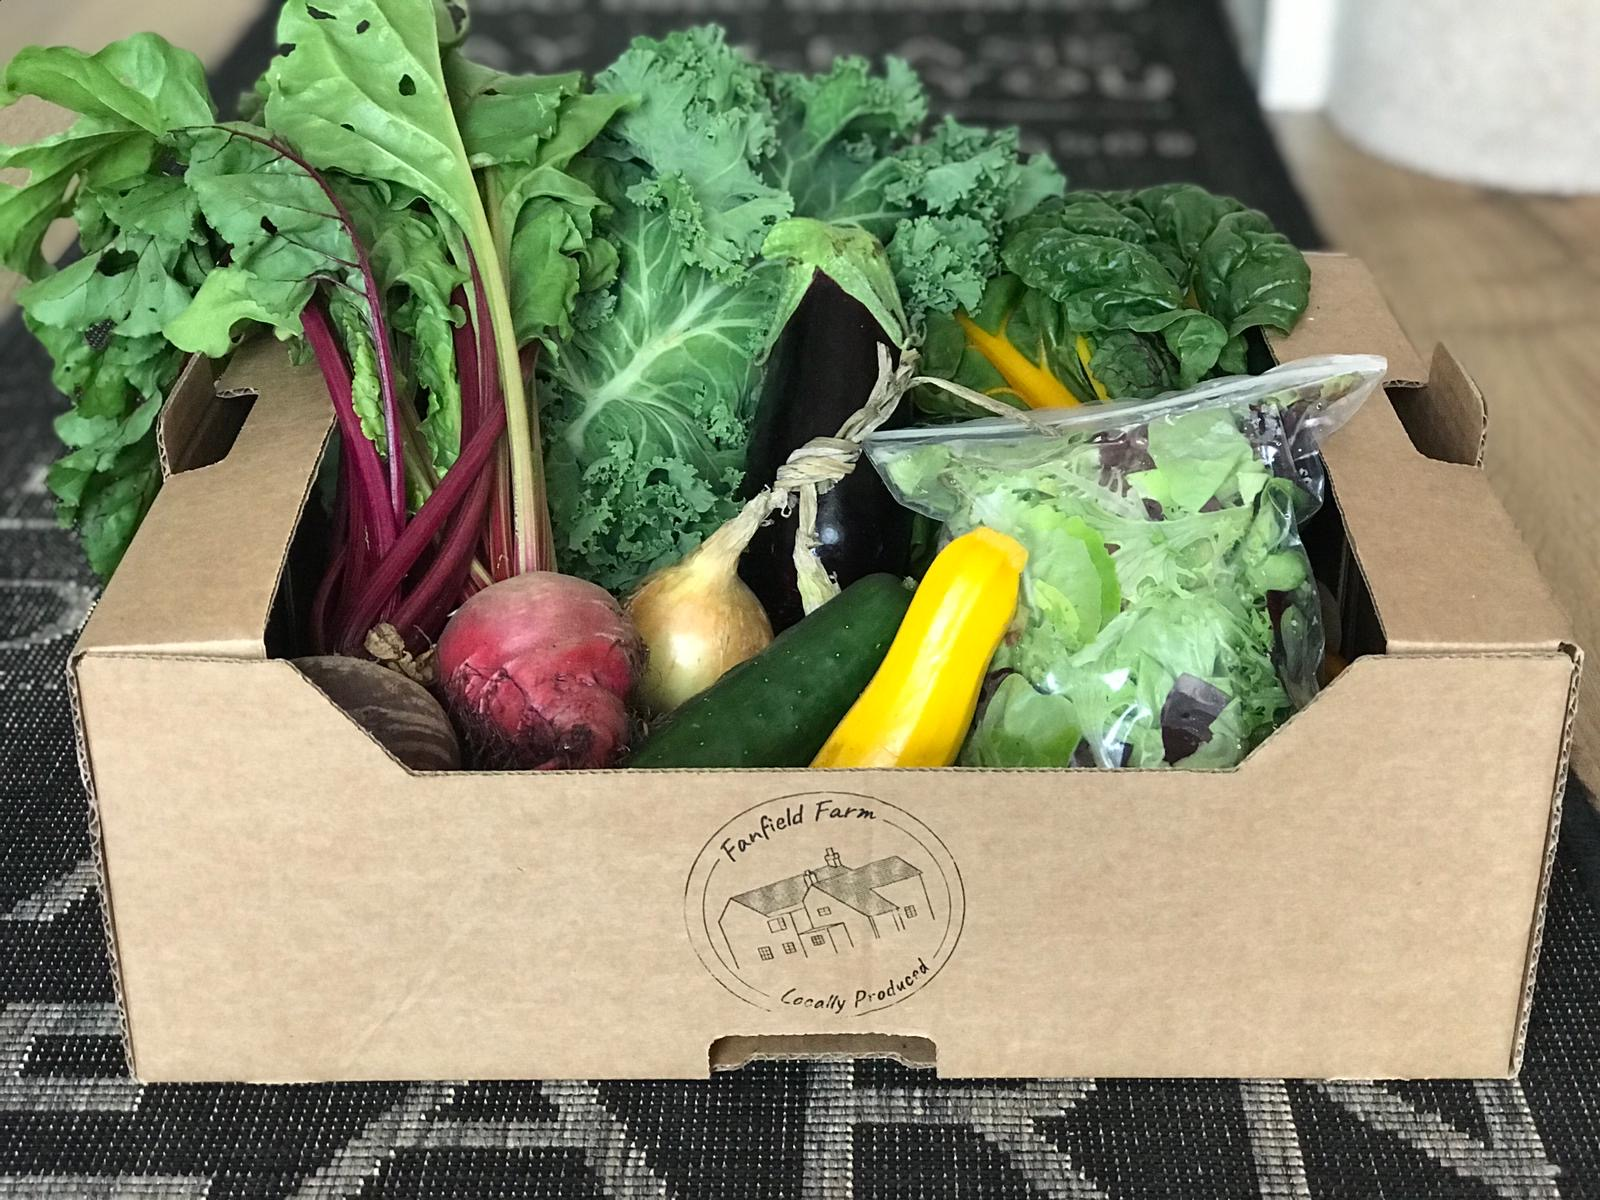 Fanfield Farm Veg Box 3